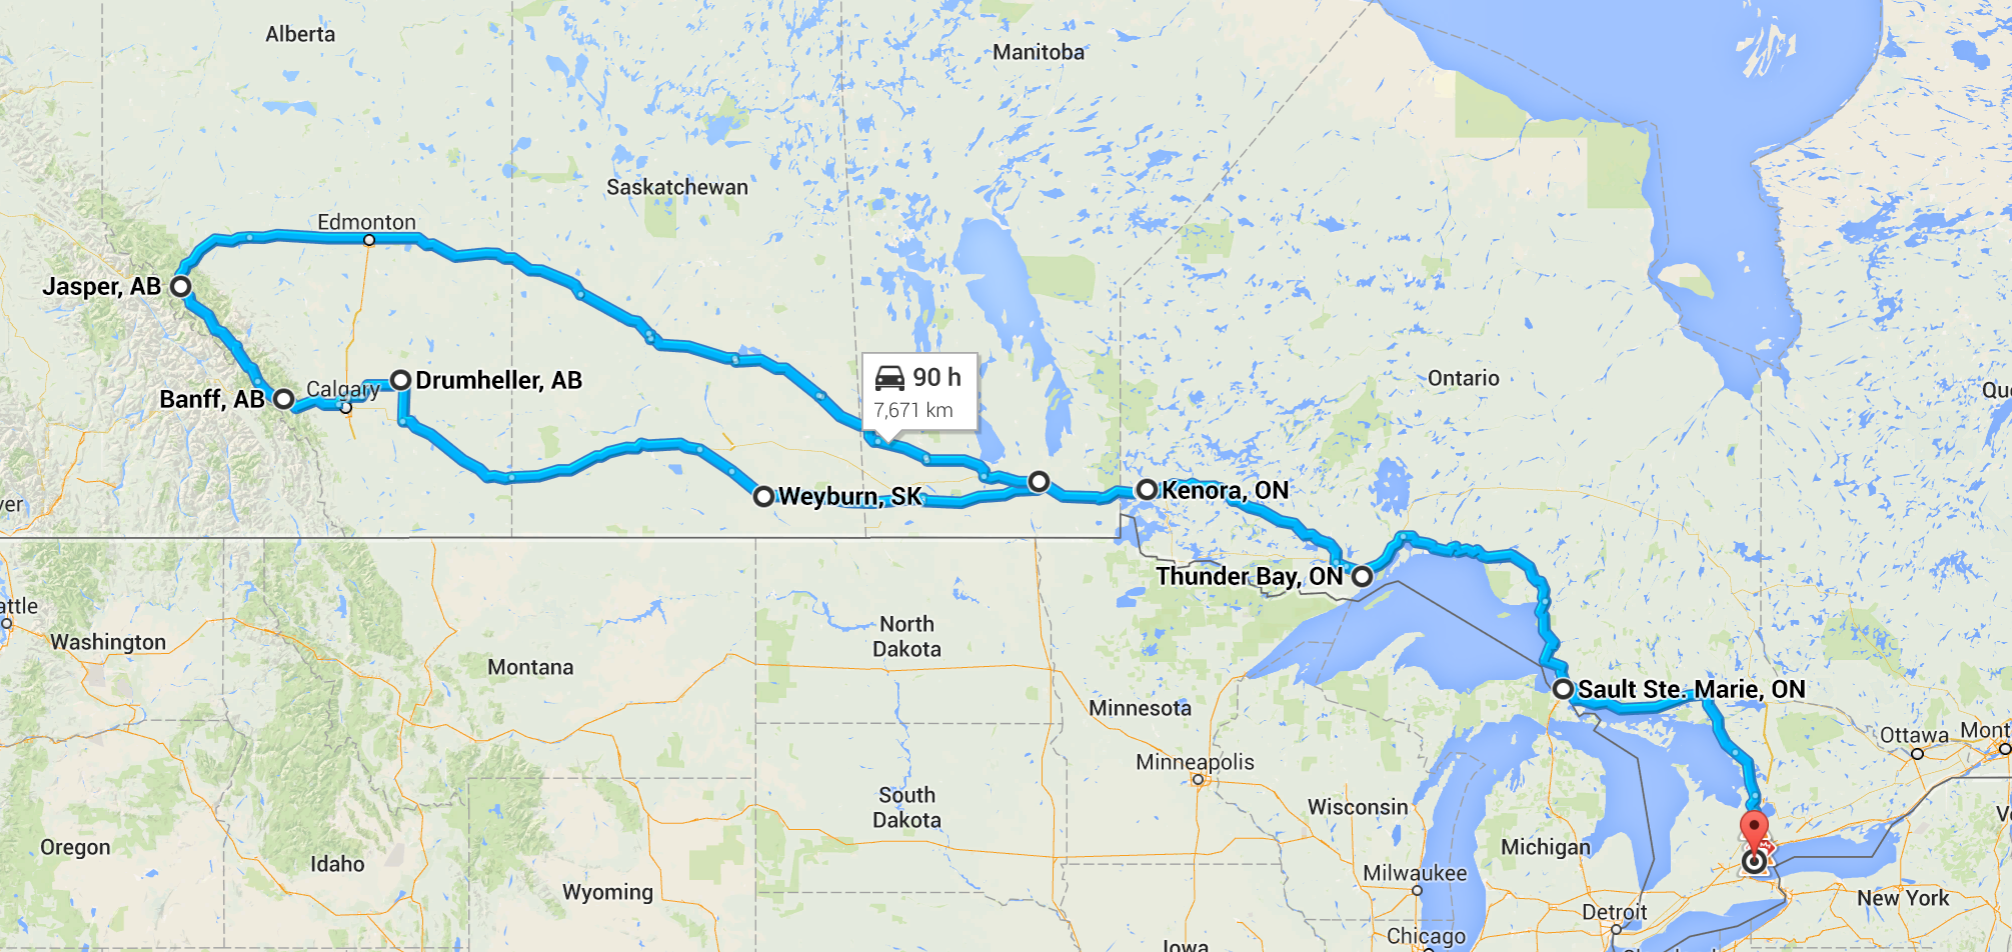 Our route to Alberta!